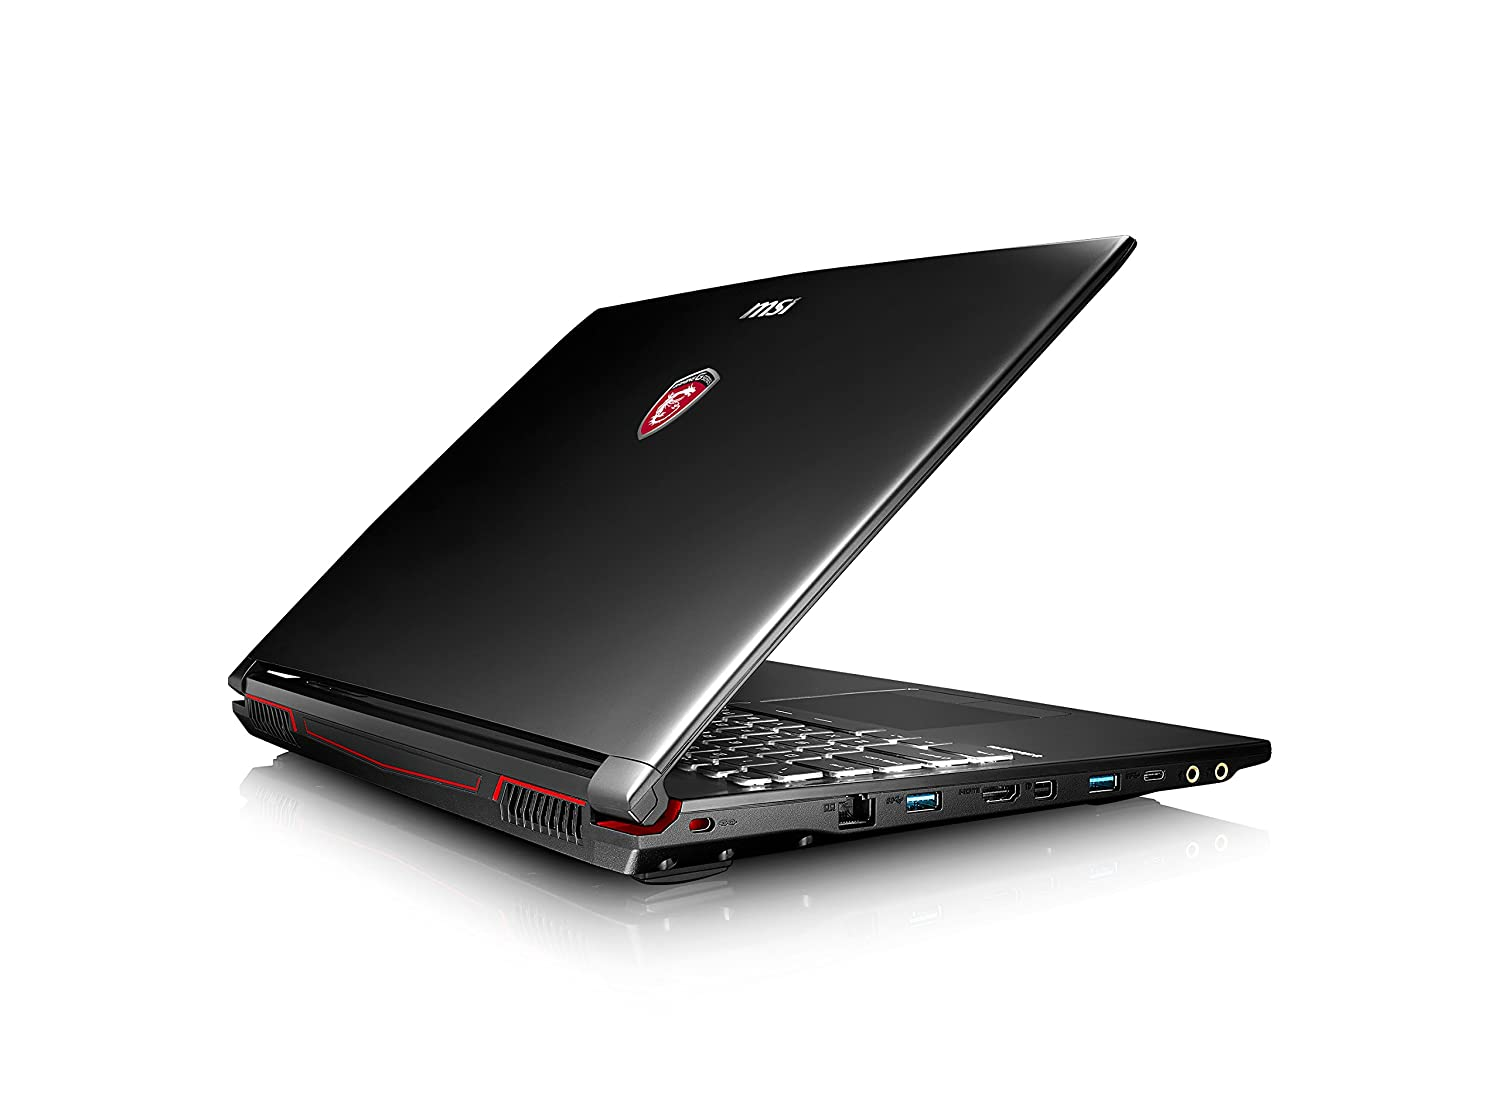 7 Best laptops for light gaming and general web browsing